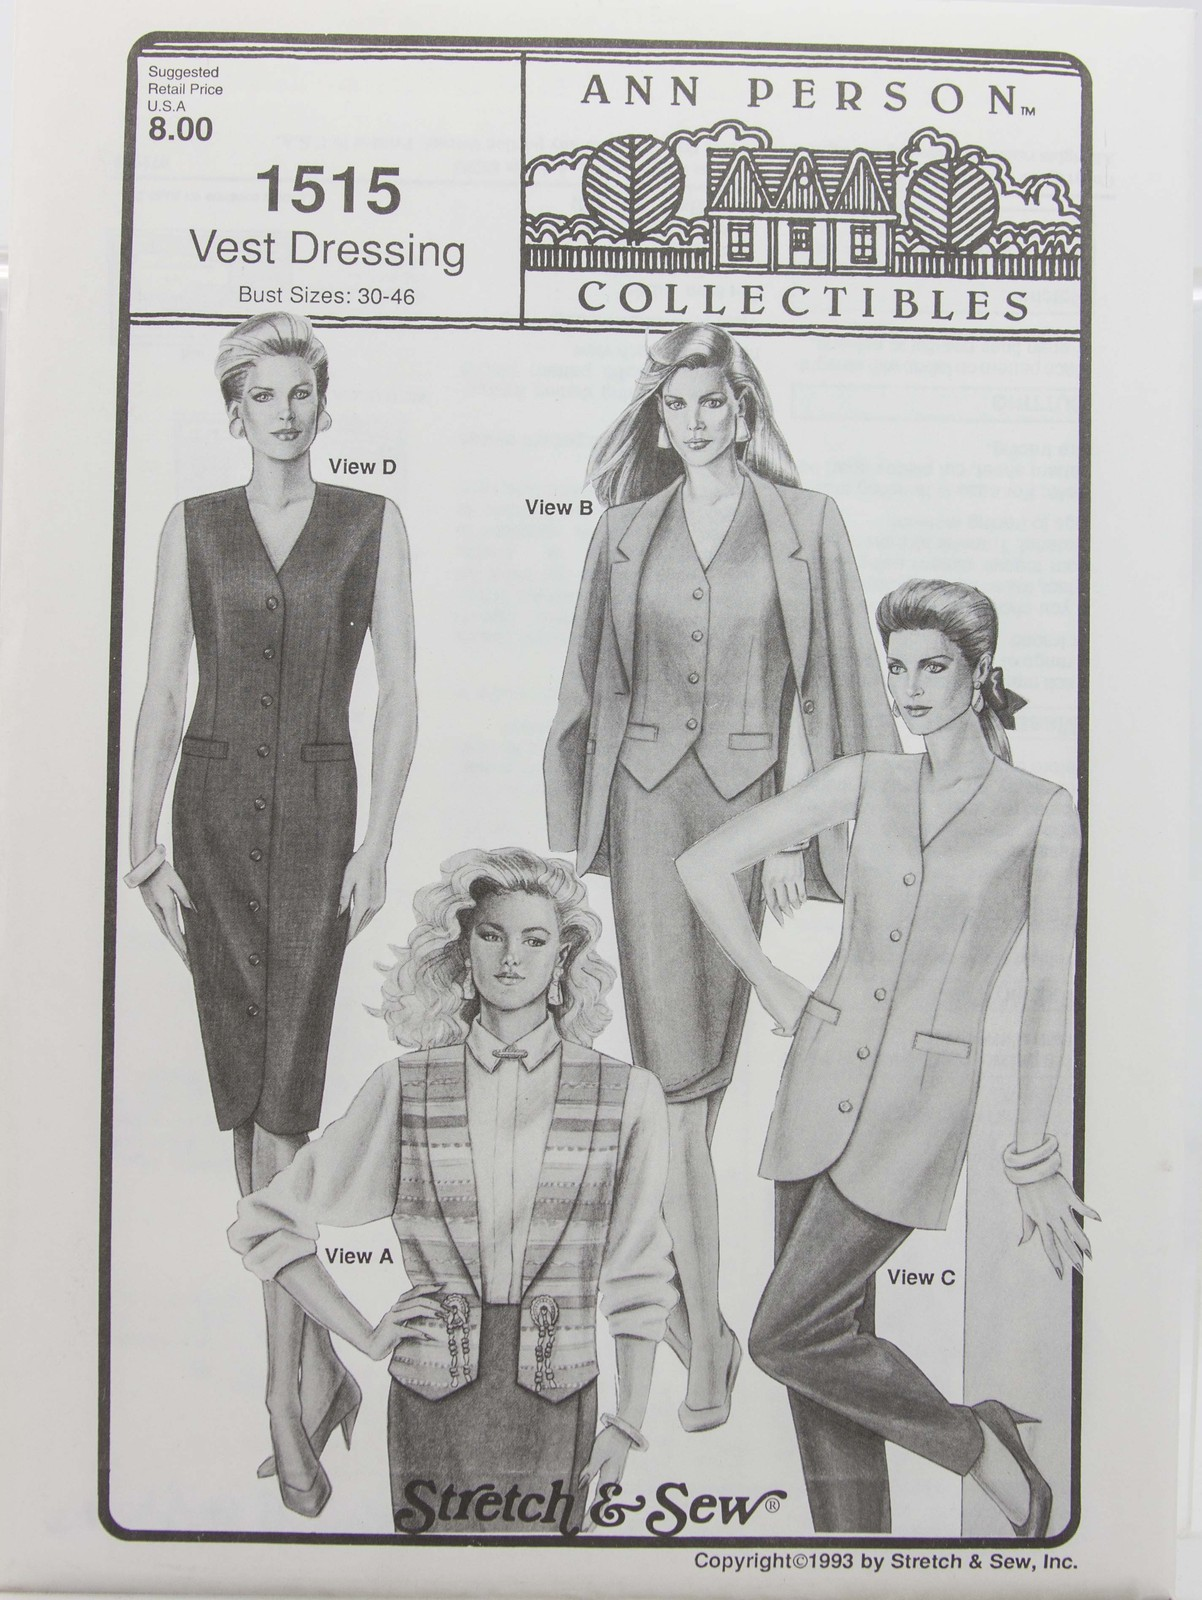 Stretch & Sew Sewing Pattern- Ann Person Collectibles #1515 - Vest Dressing